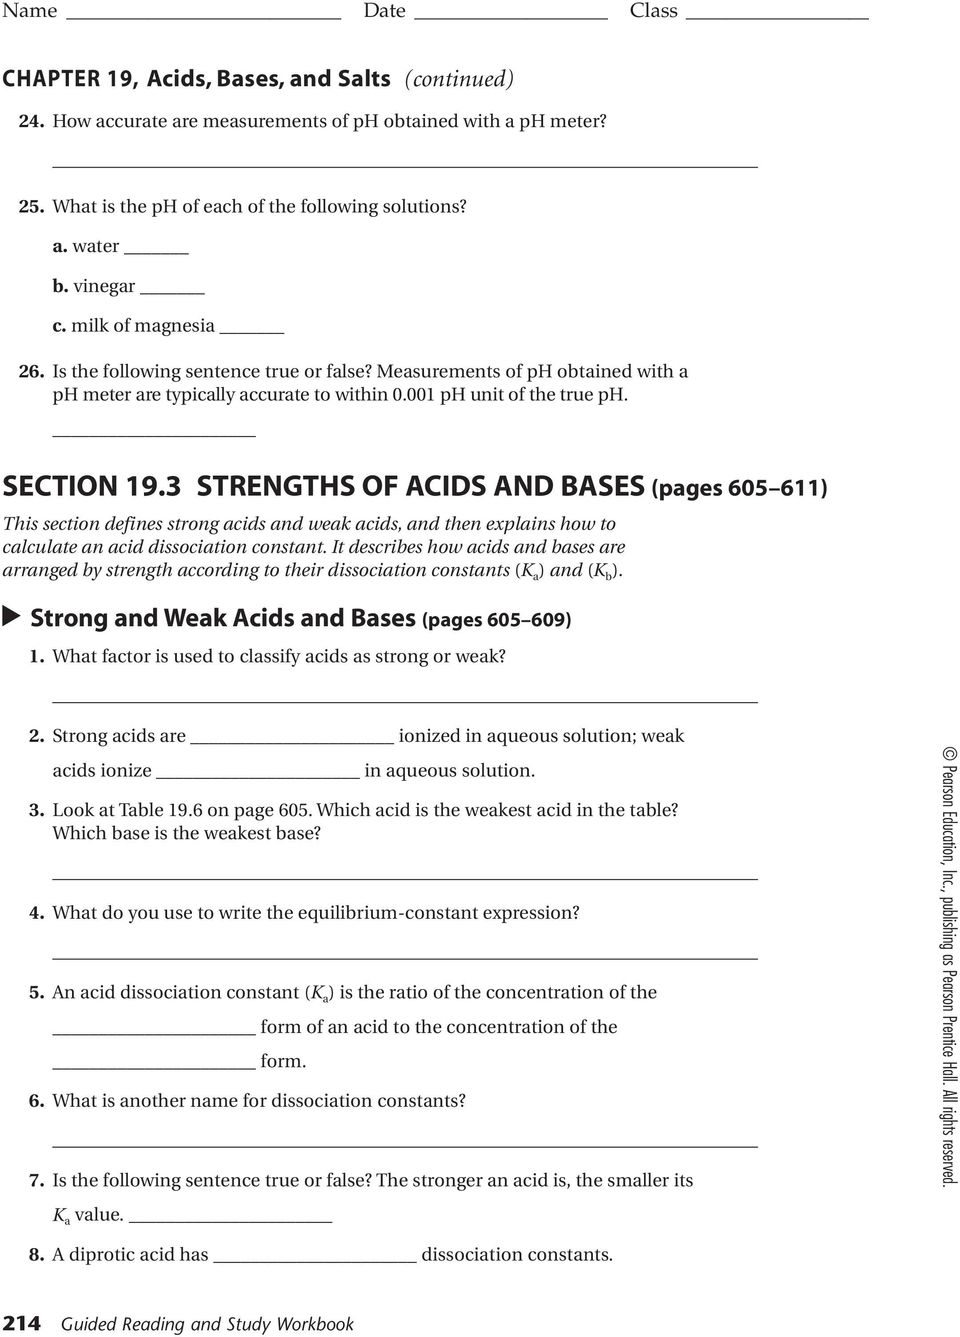 Chapter 19 Acids And Bases Homework Packet 50 Pts Name Score